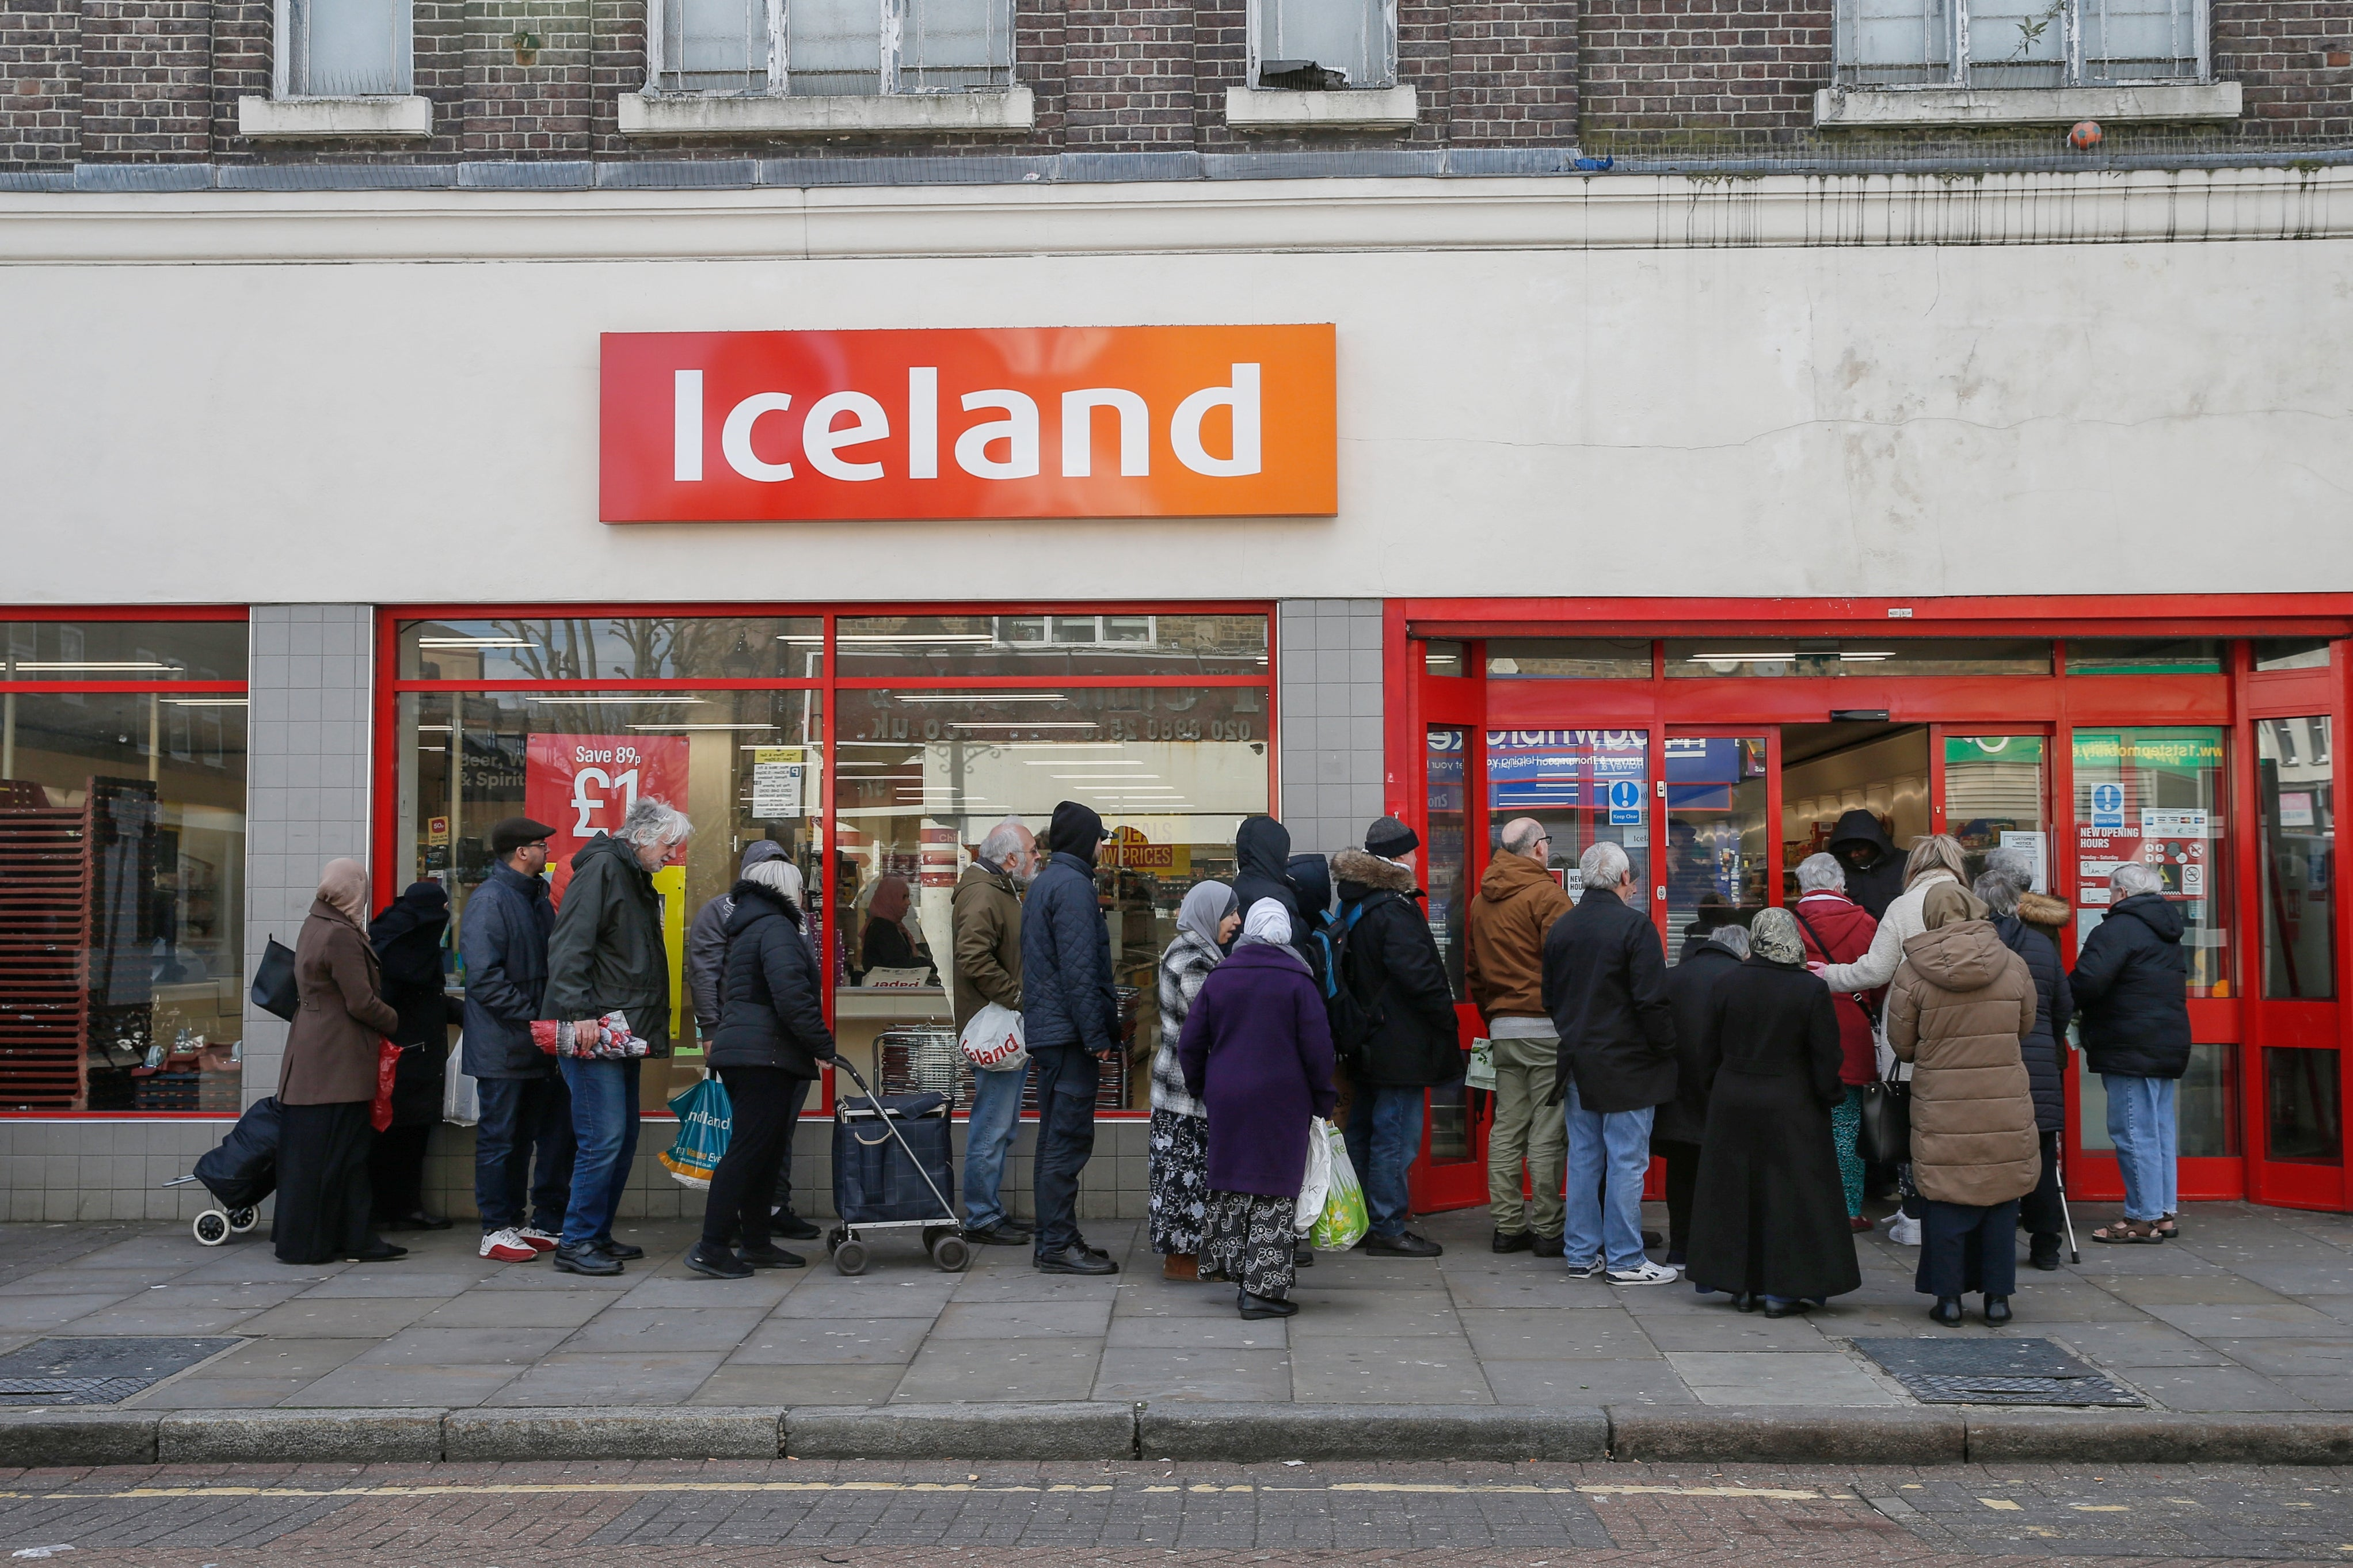 Iceland ranks worst for plastic use in new UK supermarket report